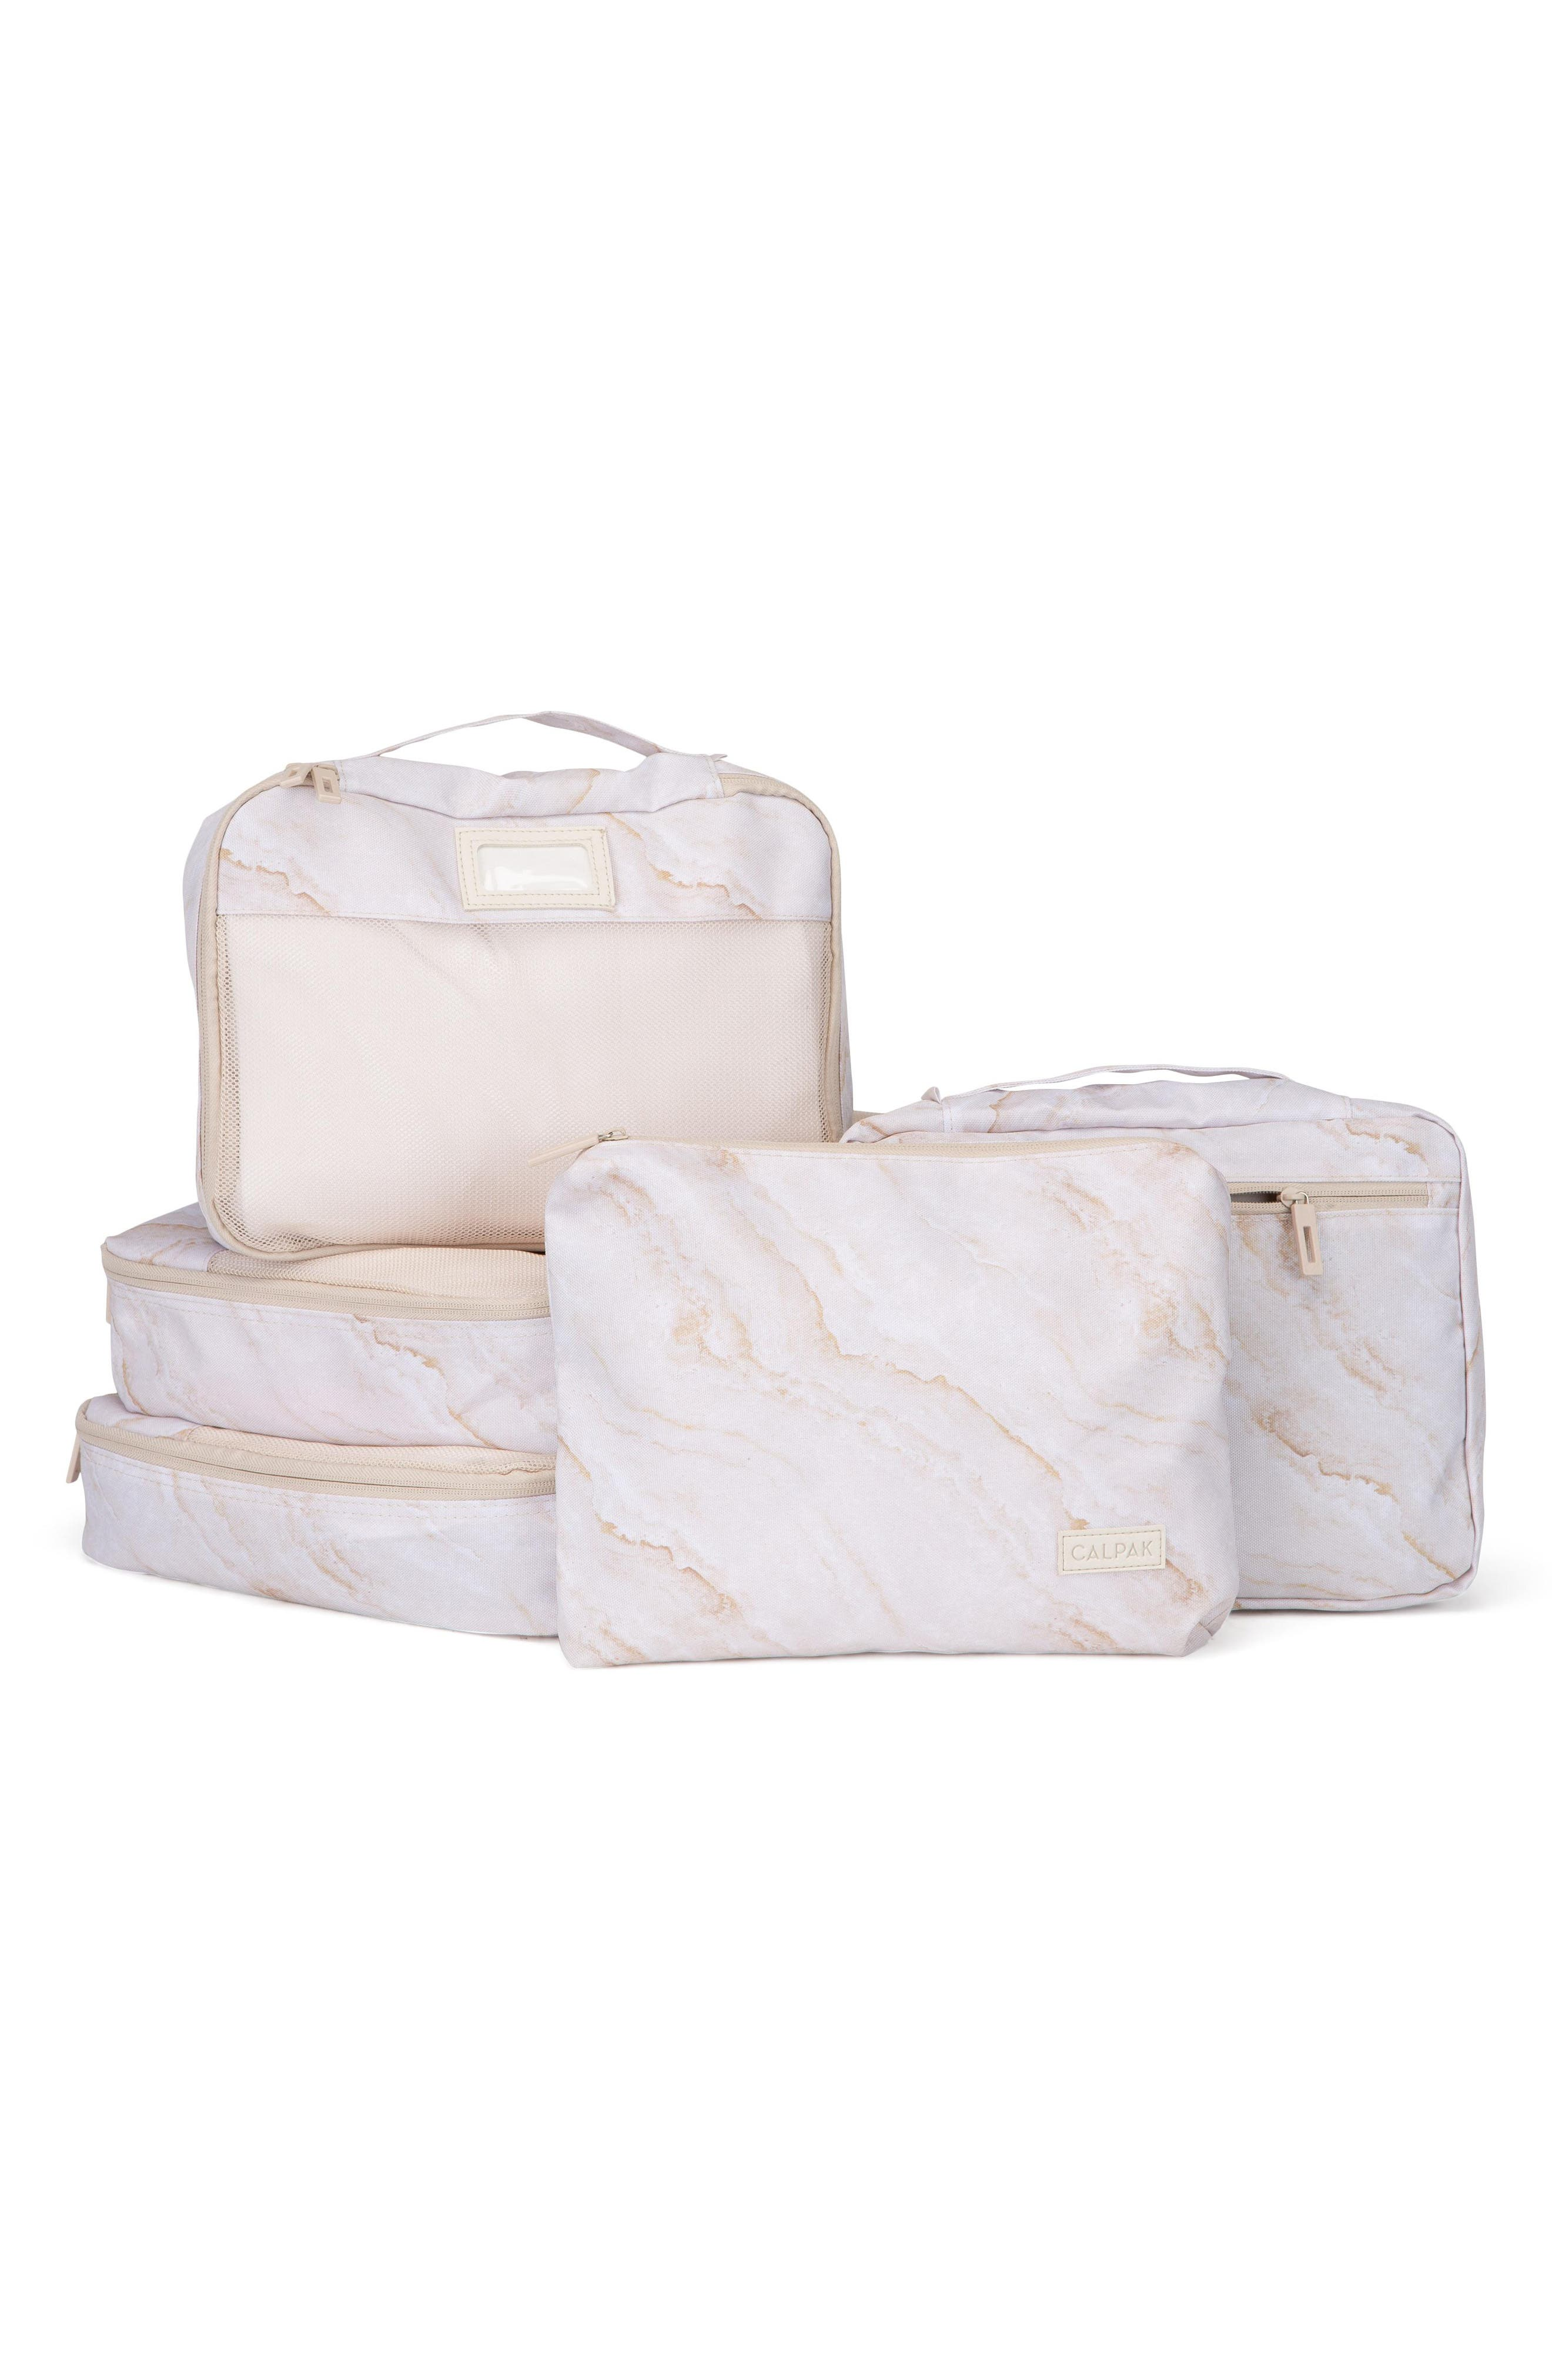 5-Piece Packing Cube Set,                         Main,                         color, GOLD MARBLE